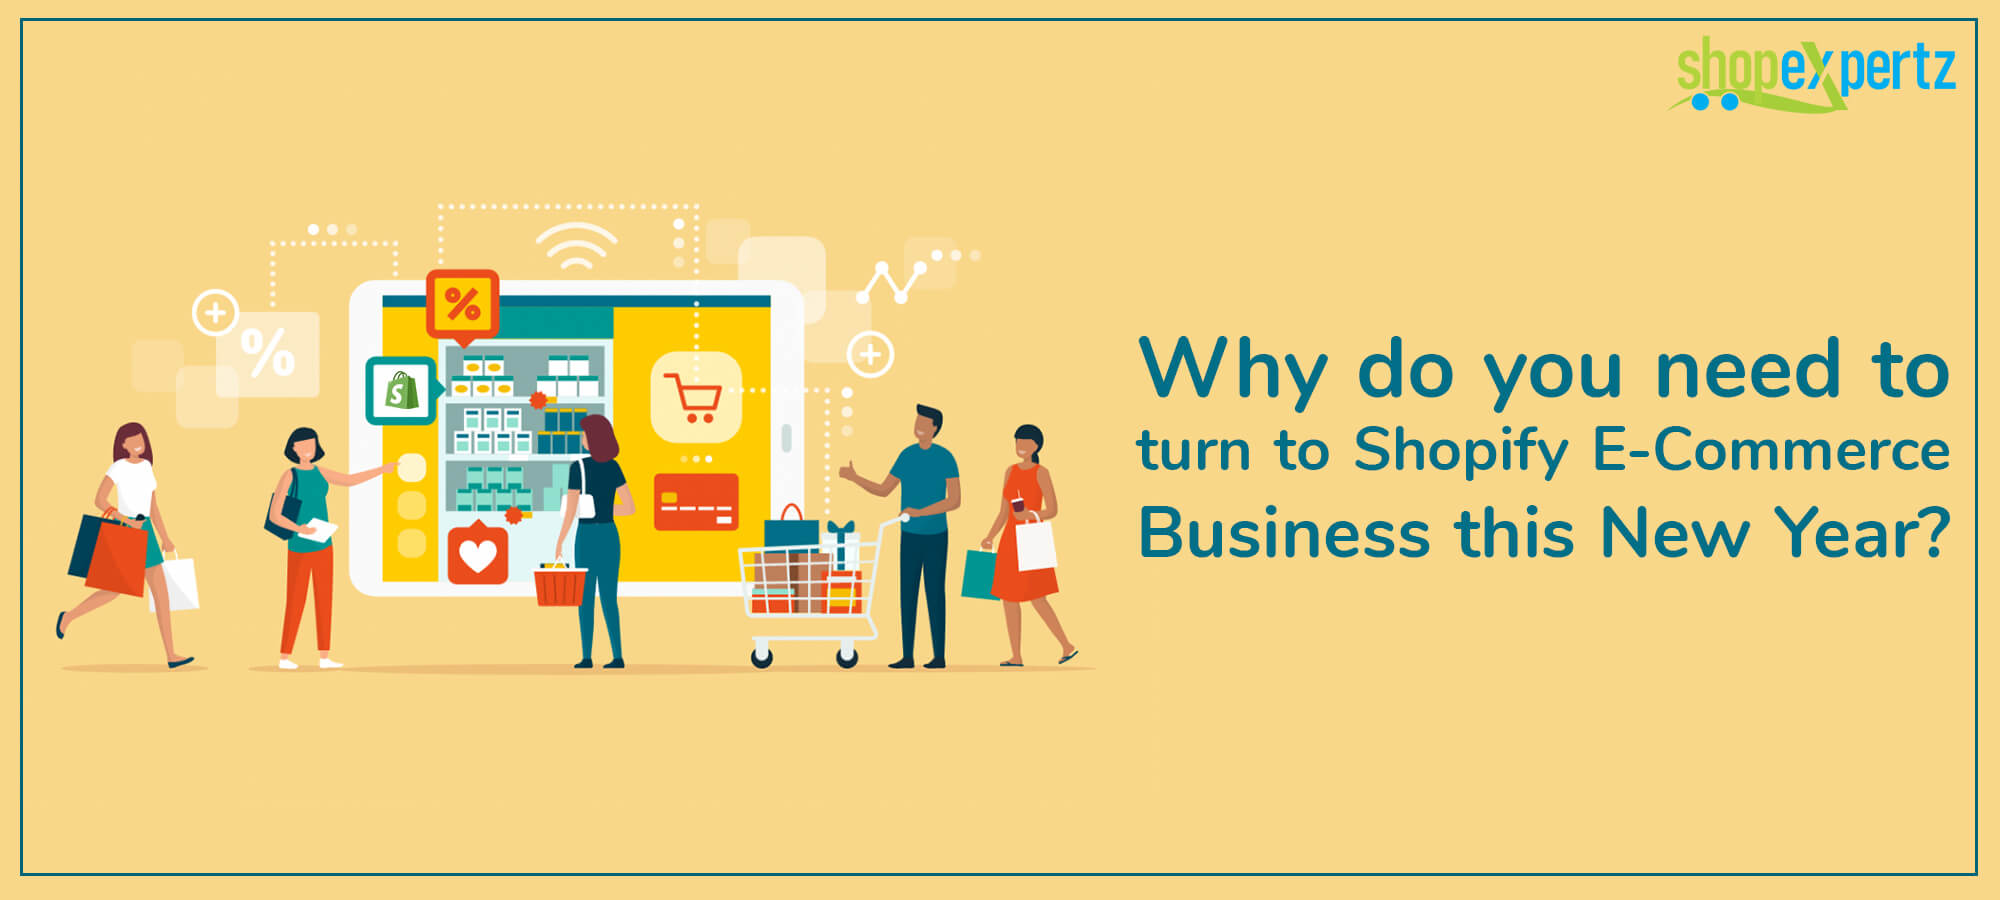 Why do you need to turn to Shopify E-Commerce Business this New Year?